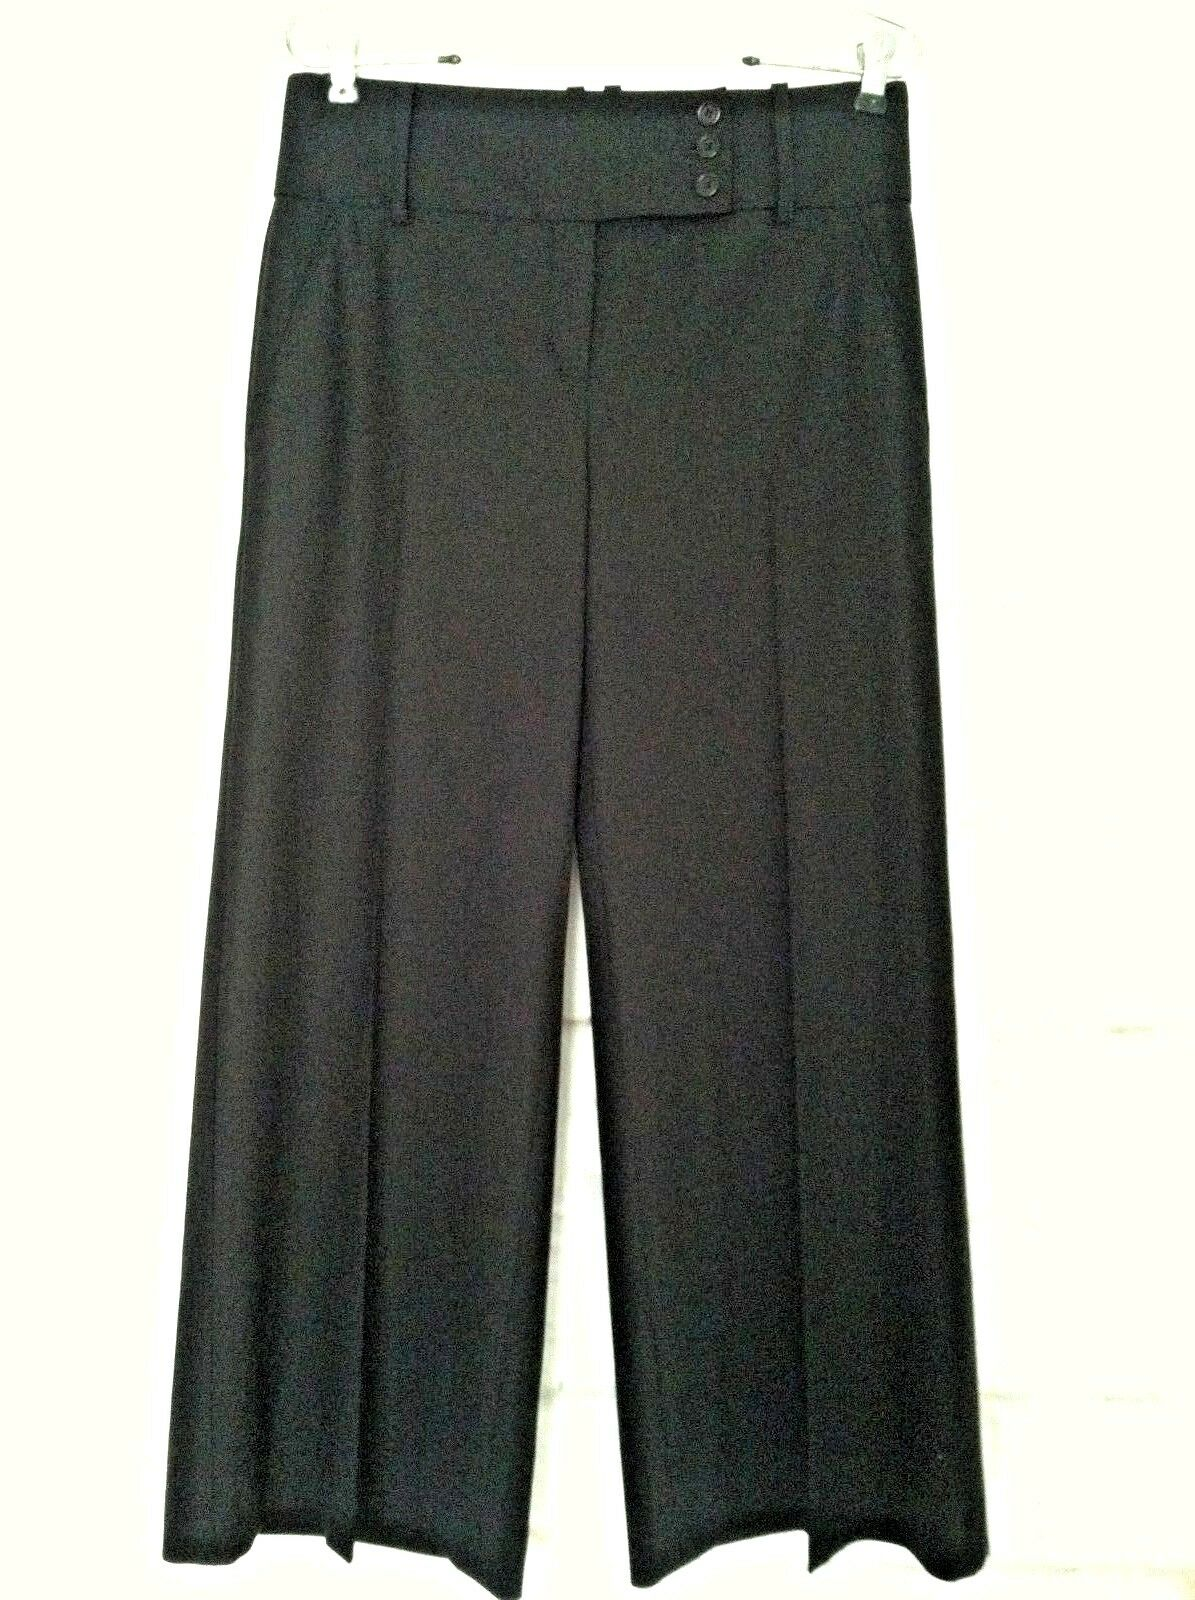 New BCBGMaxazria 4 damen pant schwarz Kleid trouser wide Wolle flap pocket  138